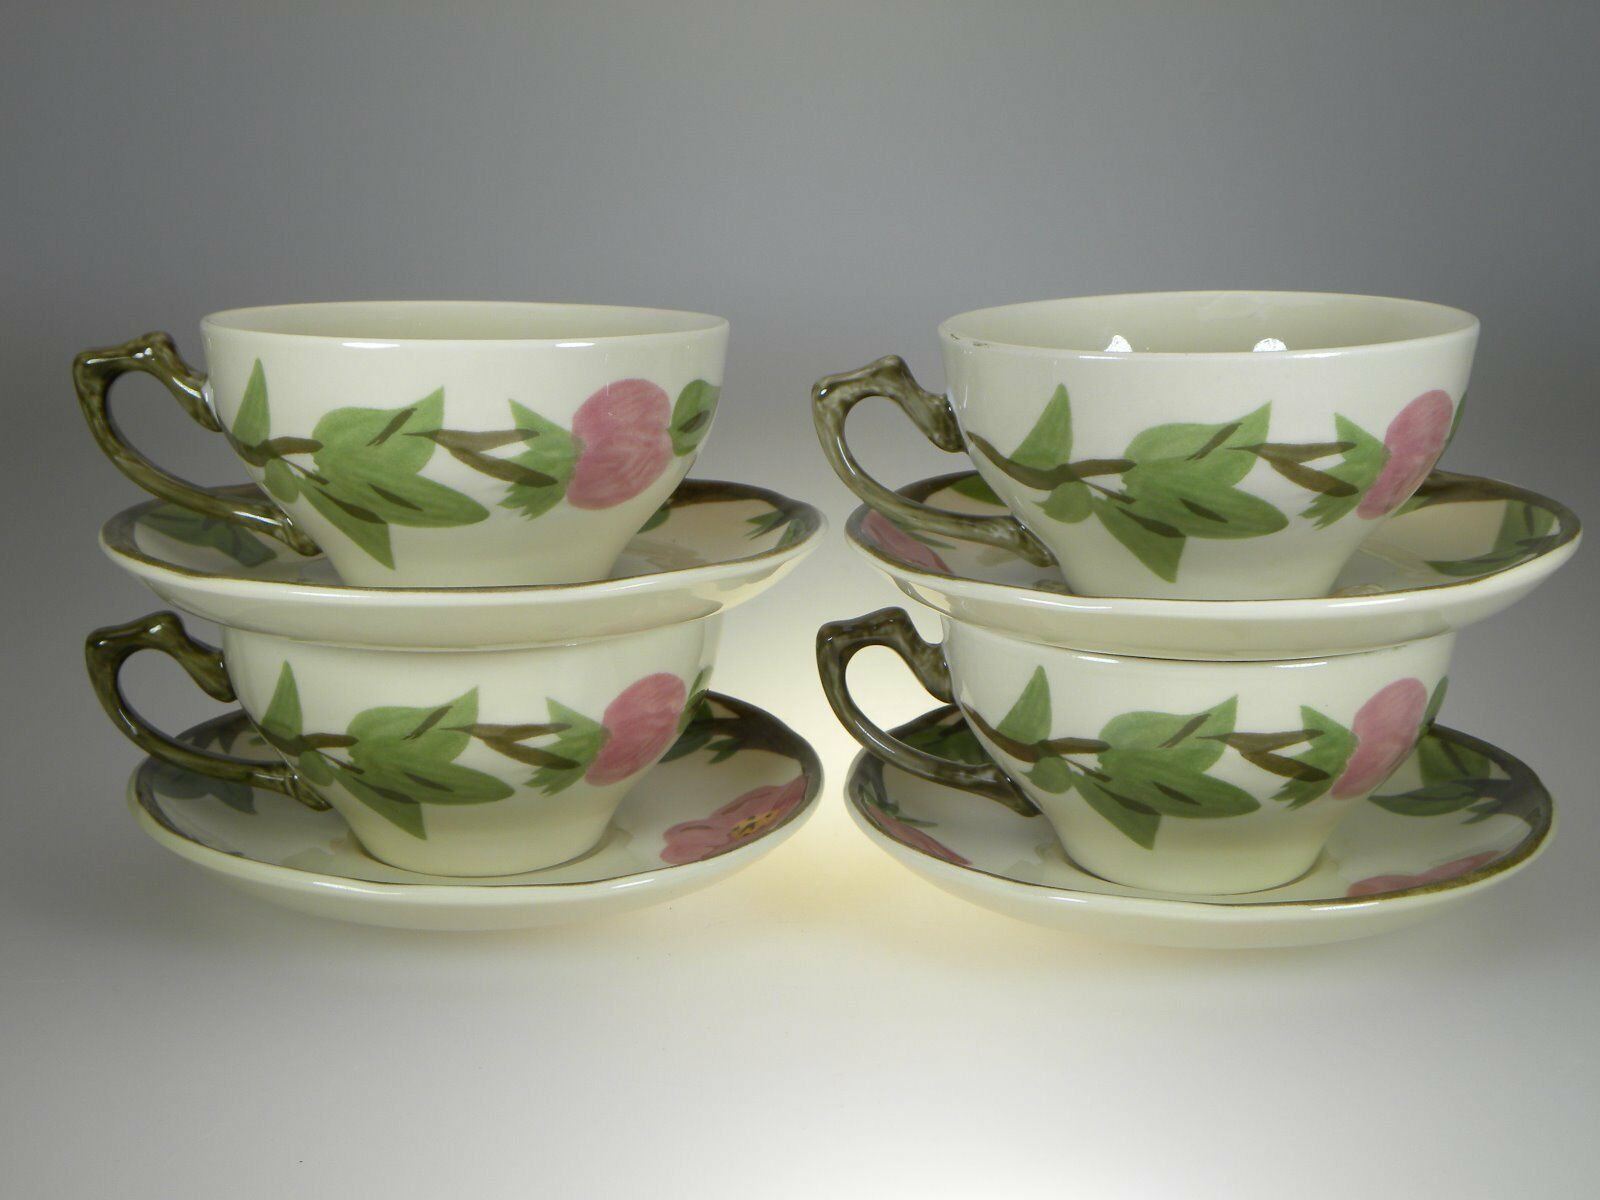 Franciscan Desert Rose 12 Cups & 12 Saucers Set of BRAND NEW PRODUCTION